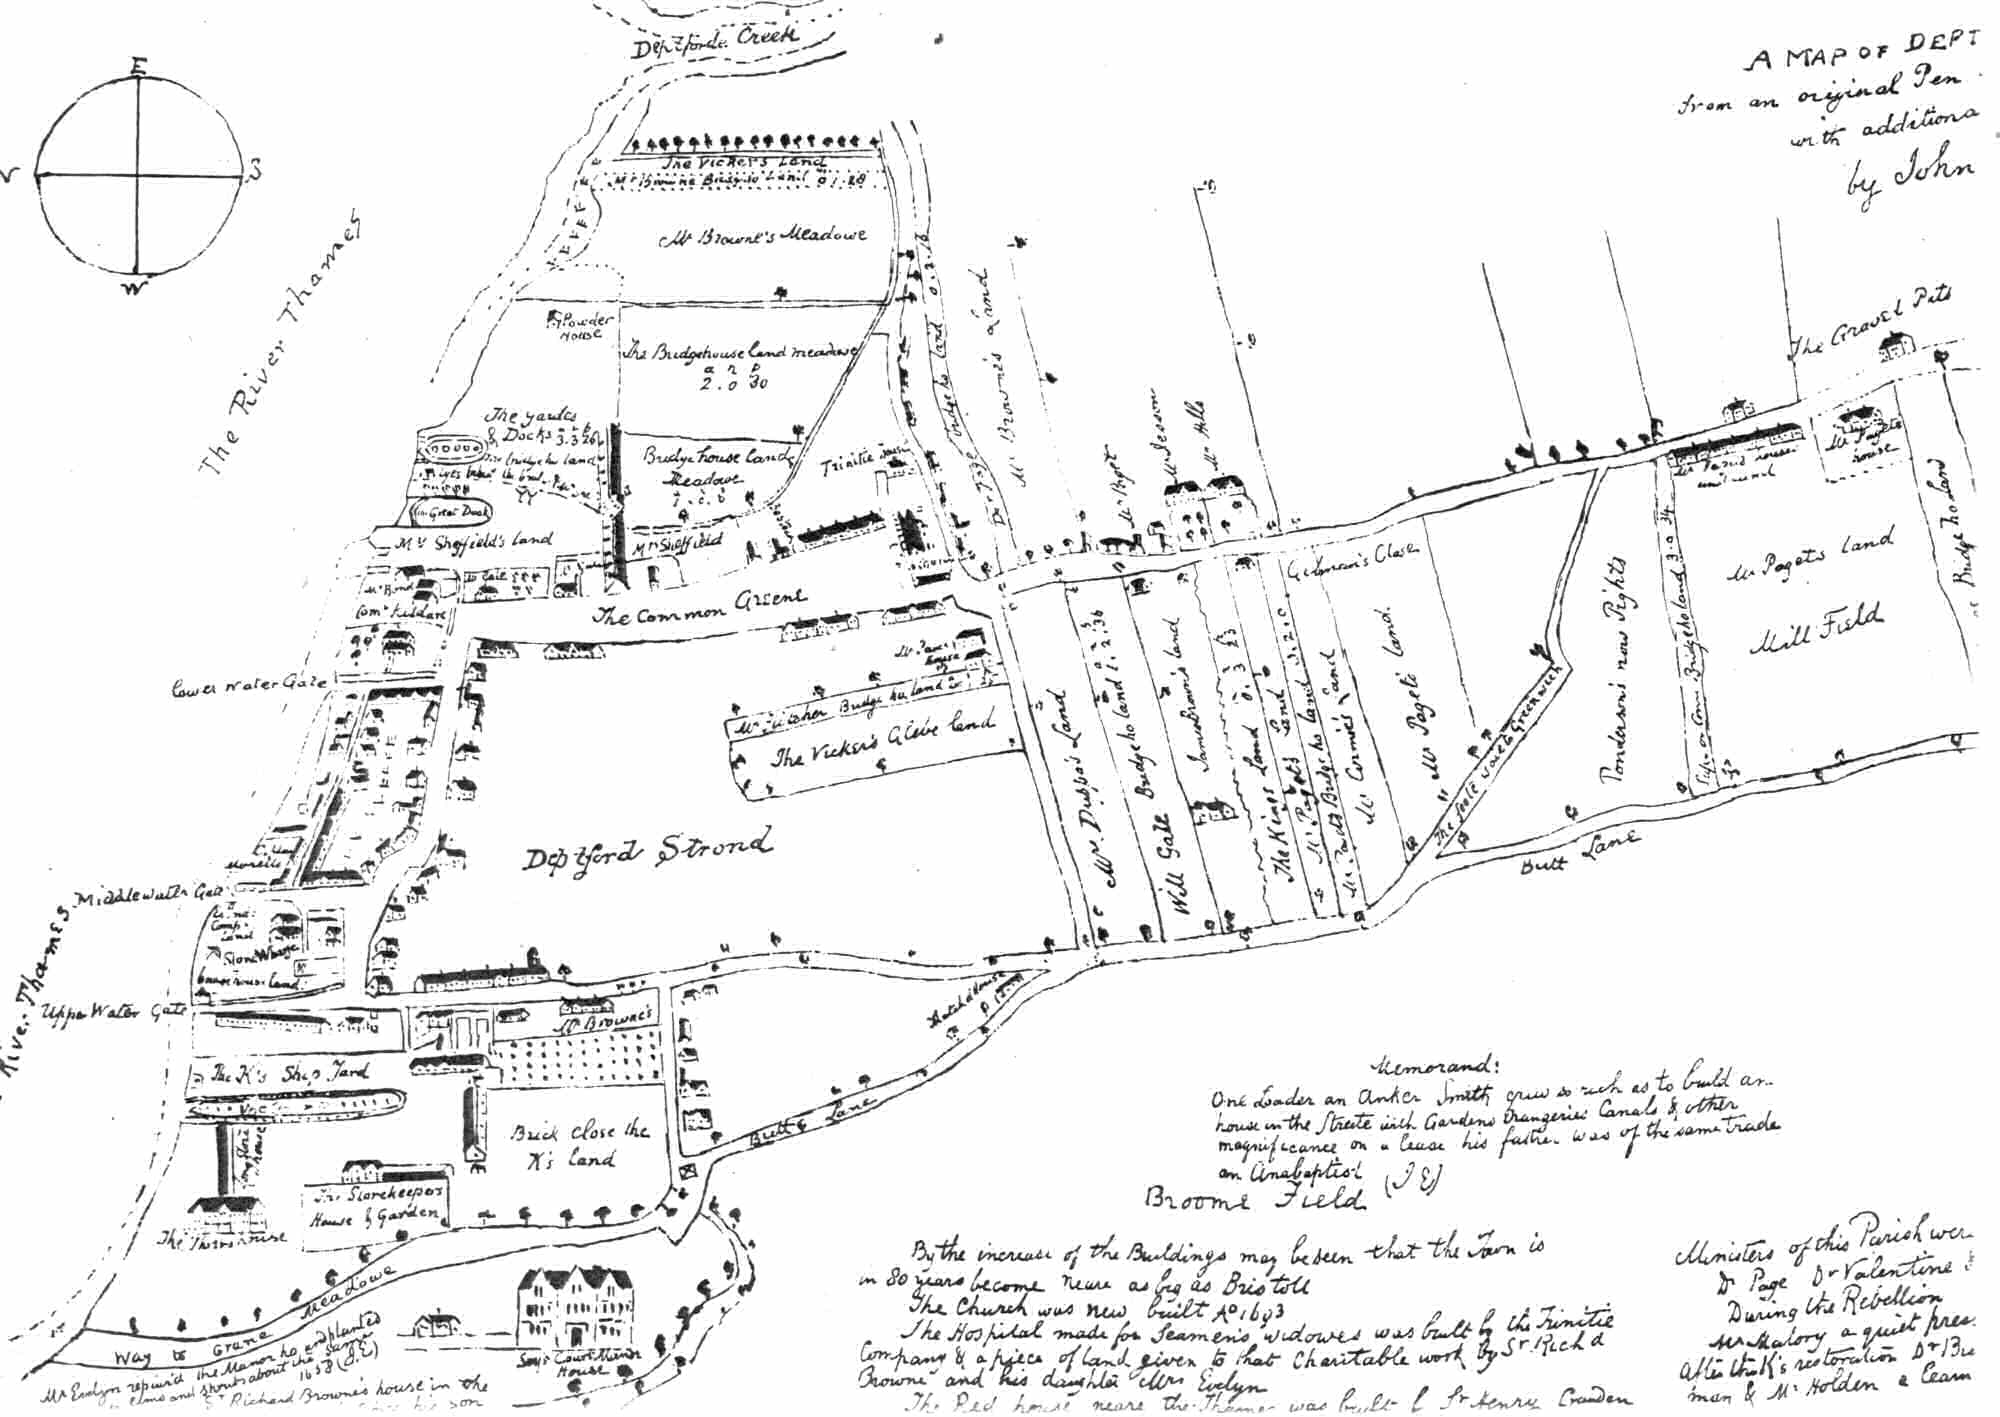 Hand-drawn map of Deptford. Creative Commons via http://www.ideal-homes.org.uk/lewisham/deptford/1623-map-01.htm